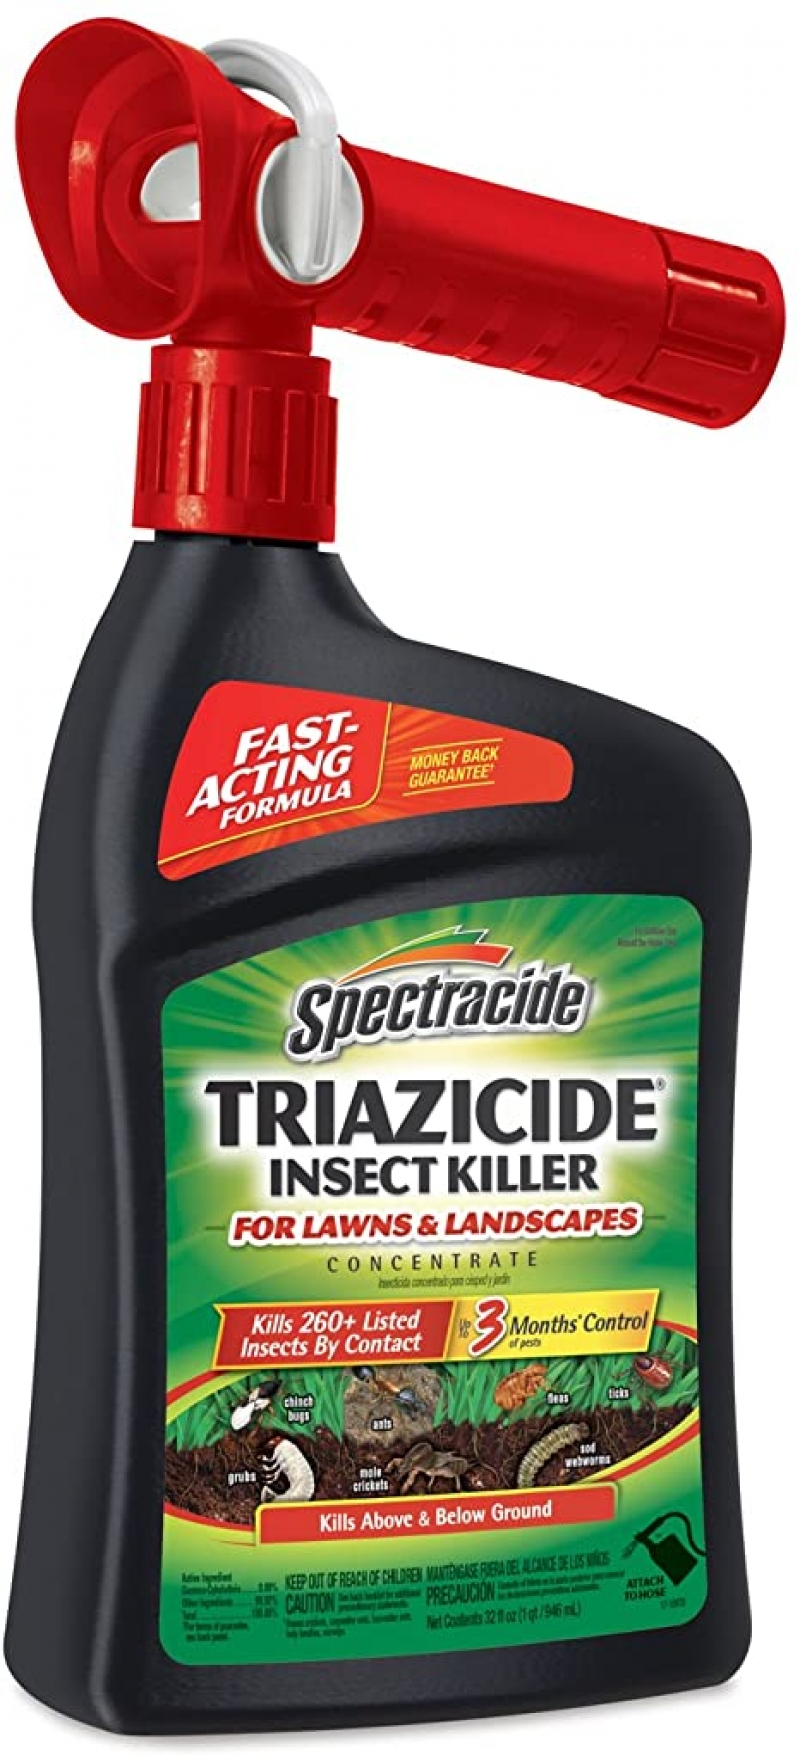 ihocon: Spectracide Triazicide Insect Killer For Lawns & Landscapes Concentrate, Ready-to-Spray, 32-Ounce 庭園殺蟲劑